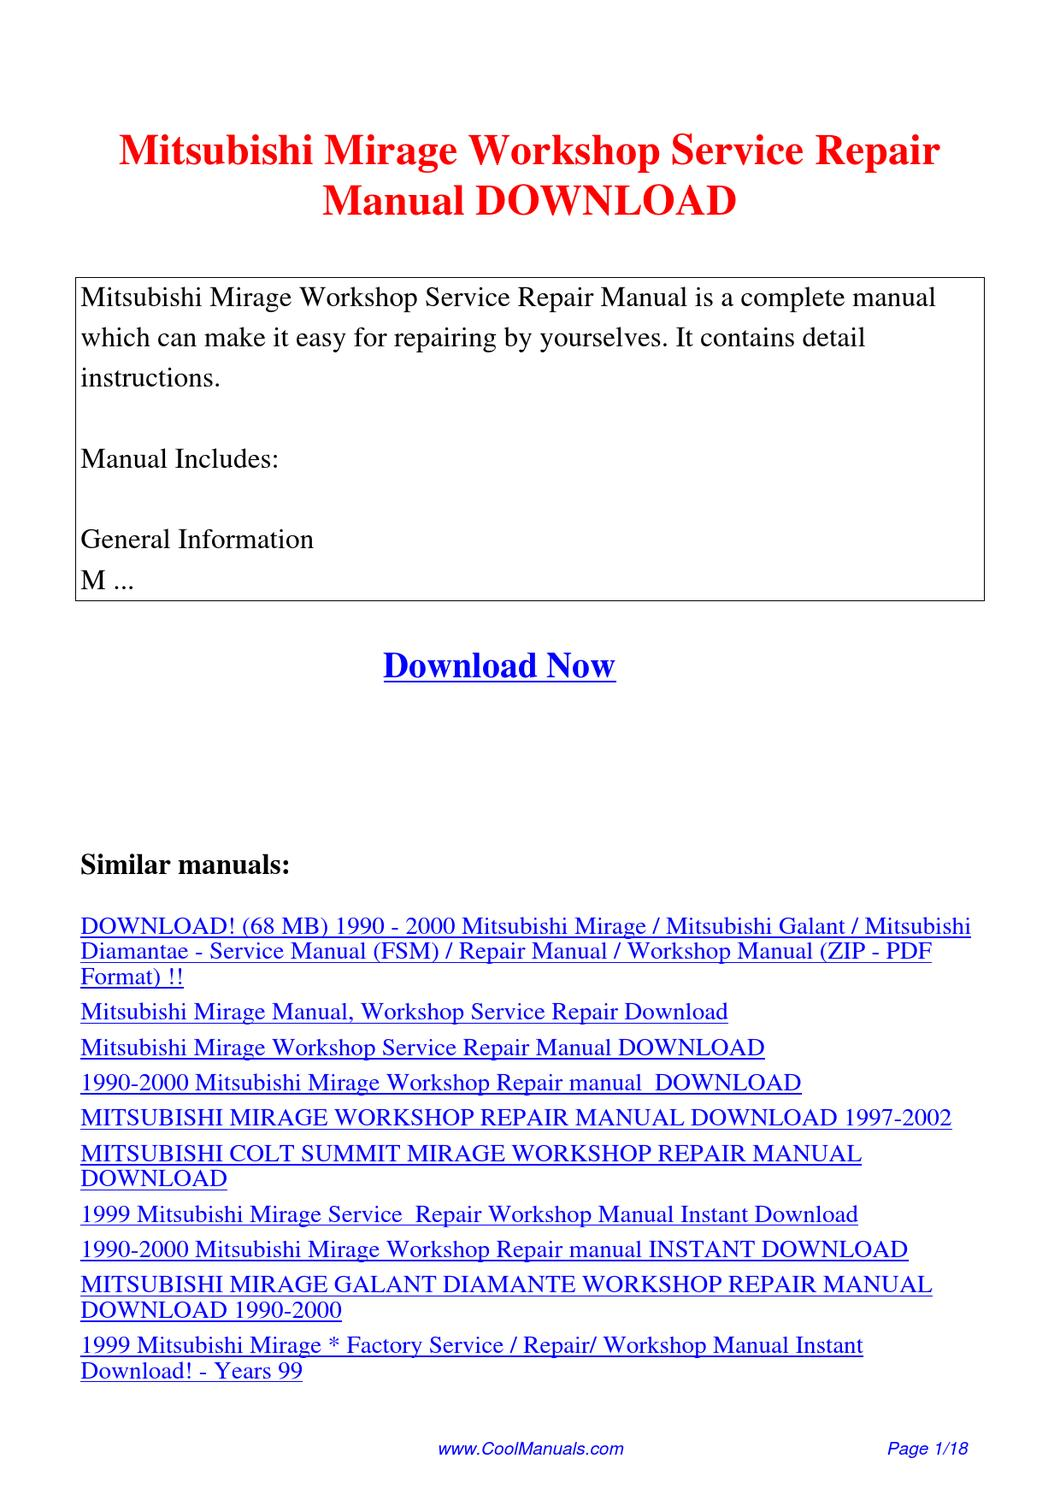 2002 Mitsubishi Galant Repair Manual Free Download Good Owner Fuse Box Layout Mirage Workshop Service By Kai Kaik Issuu Rh Com